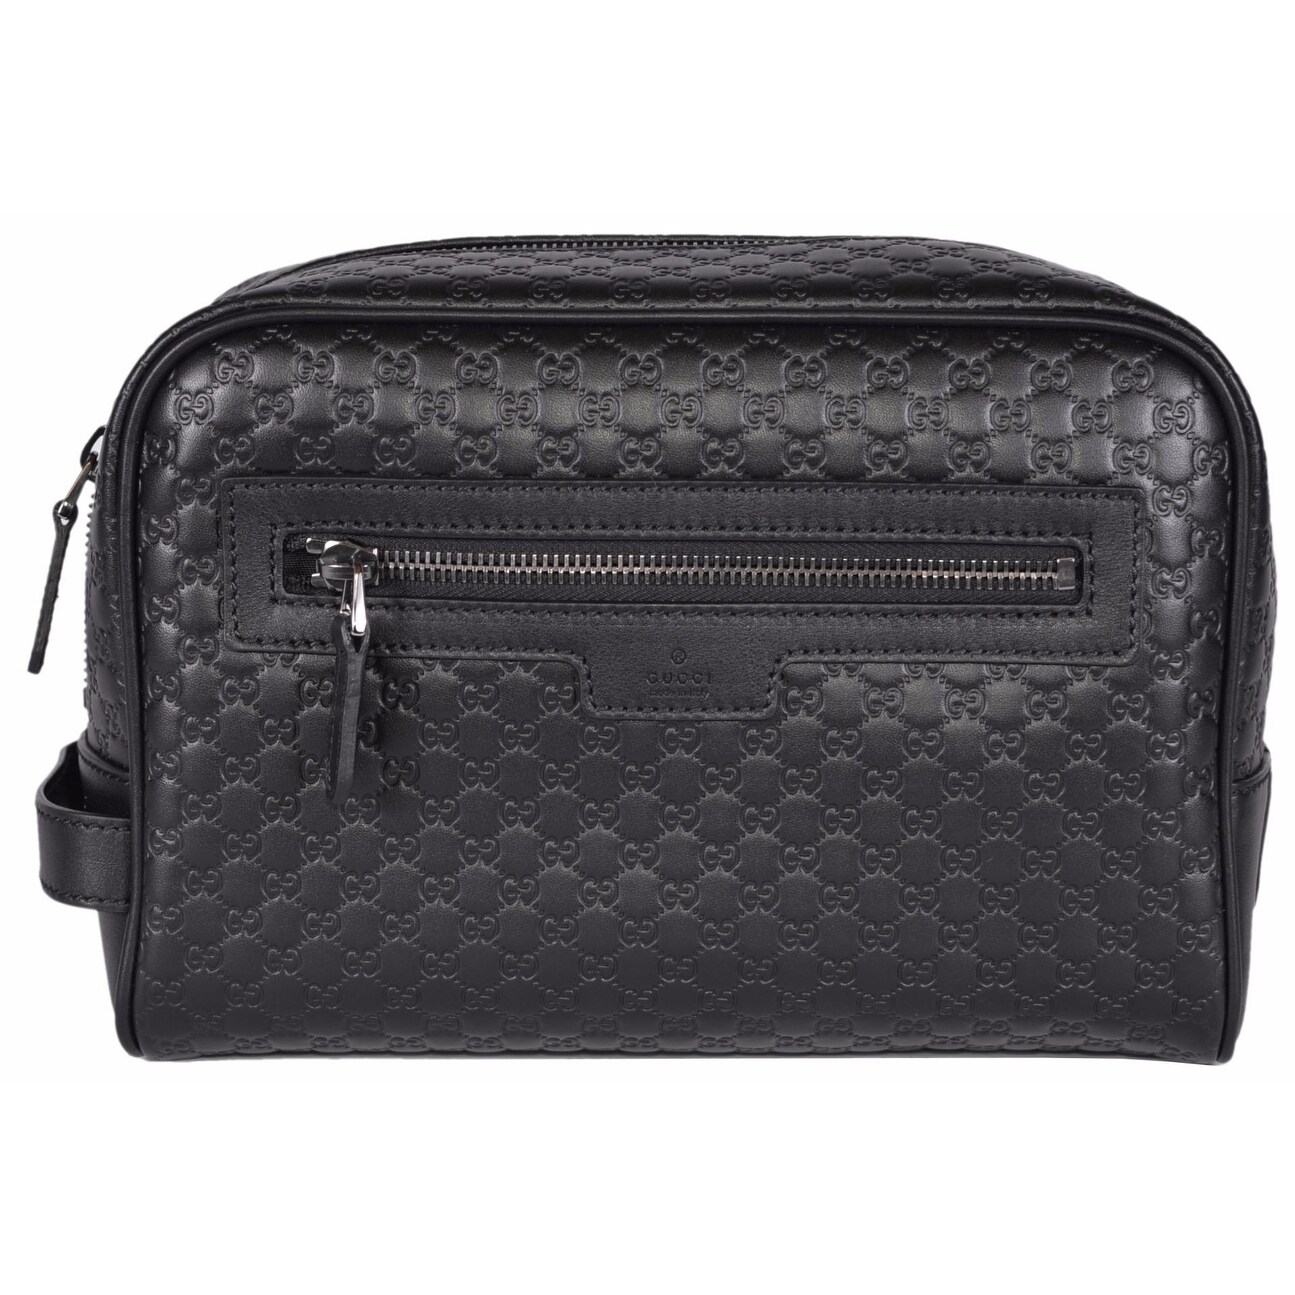 North Face Toiletry Bag